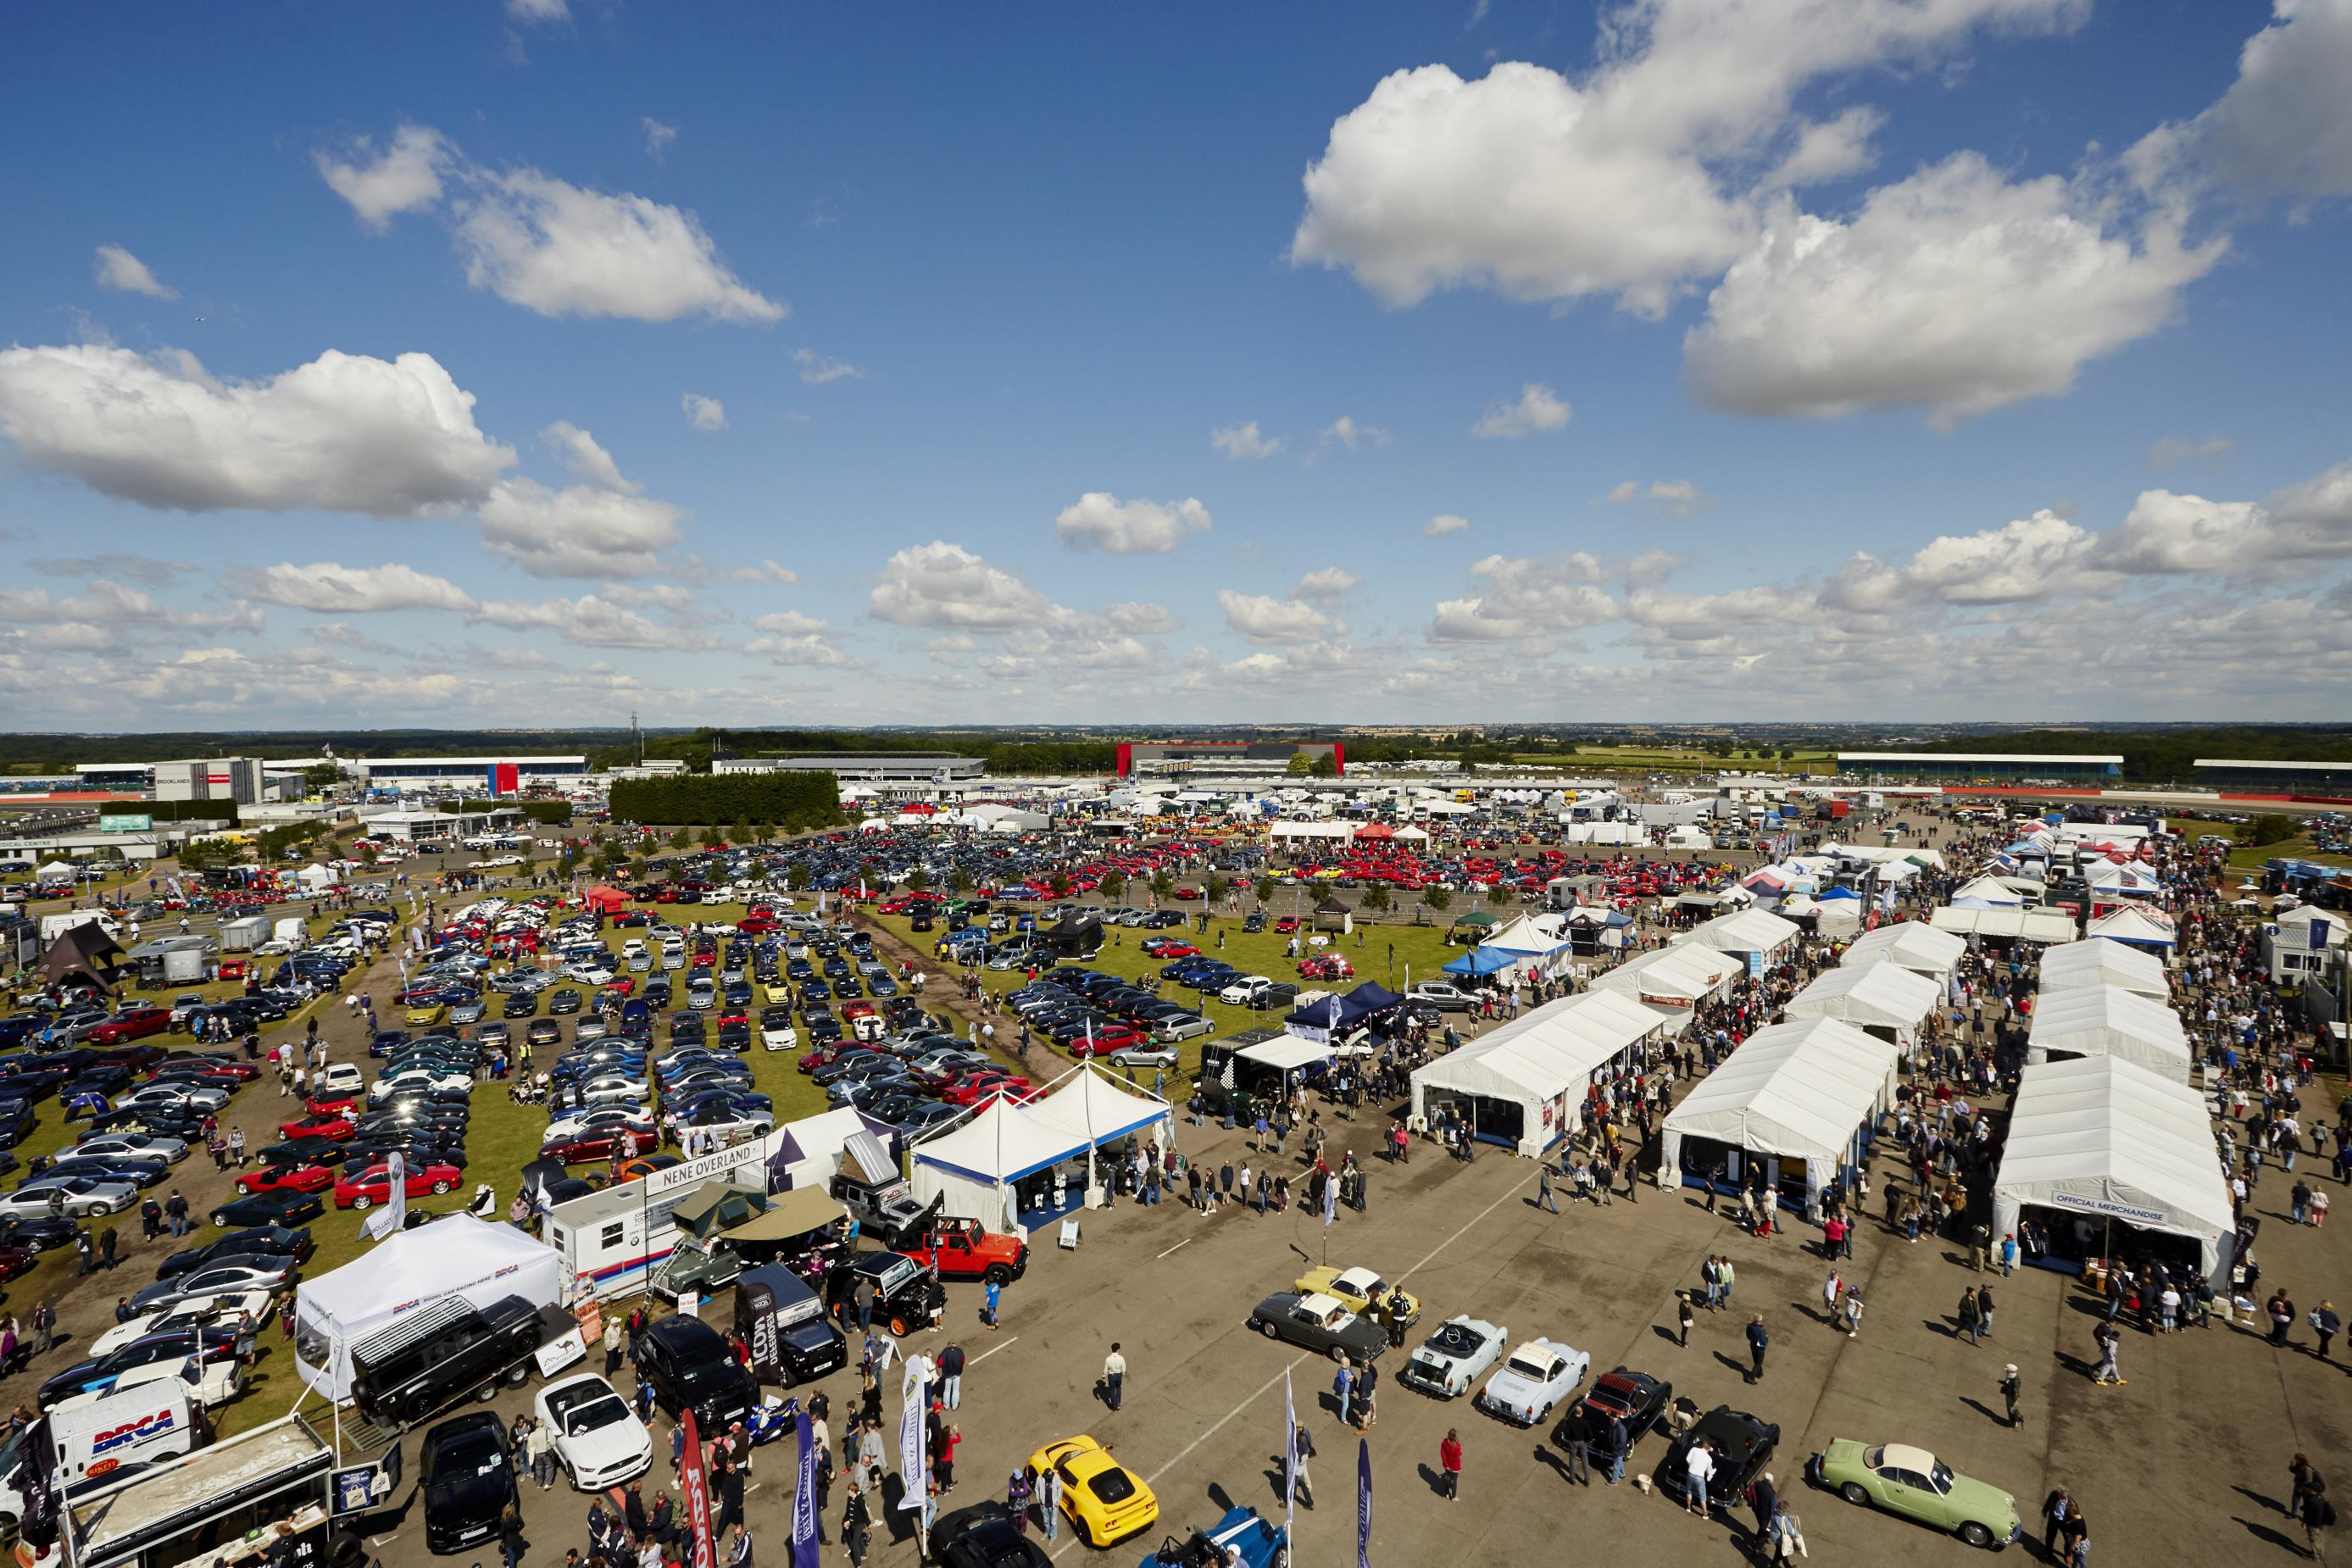 Silverstone Classic combines new and classic cars